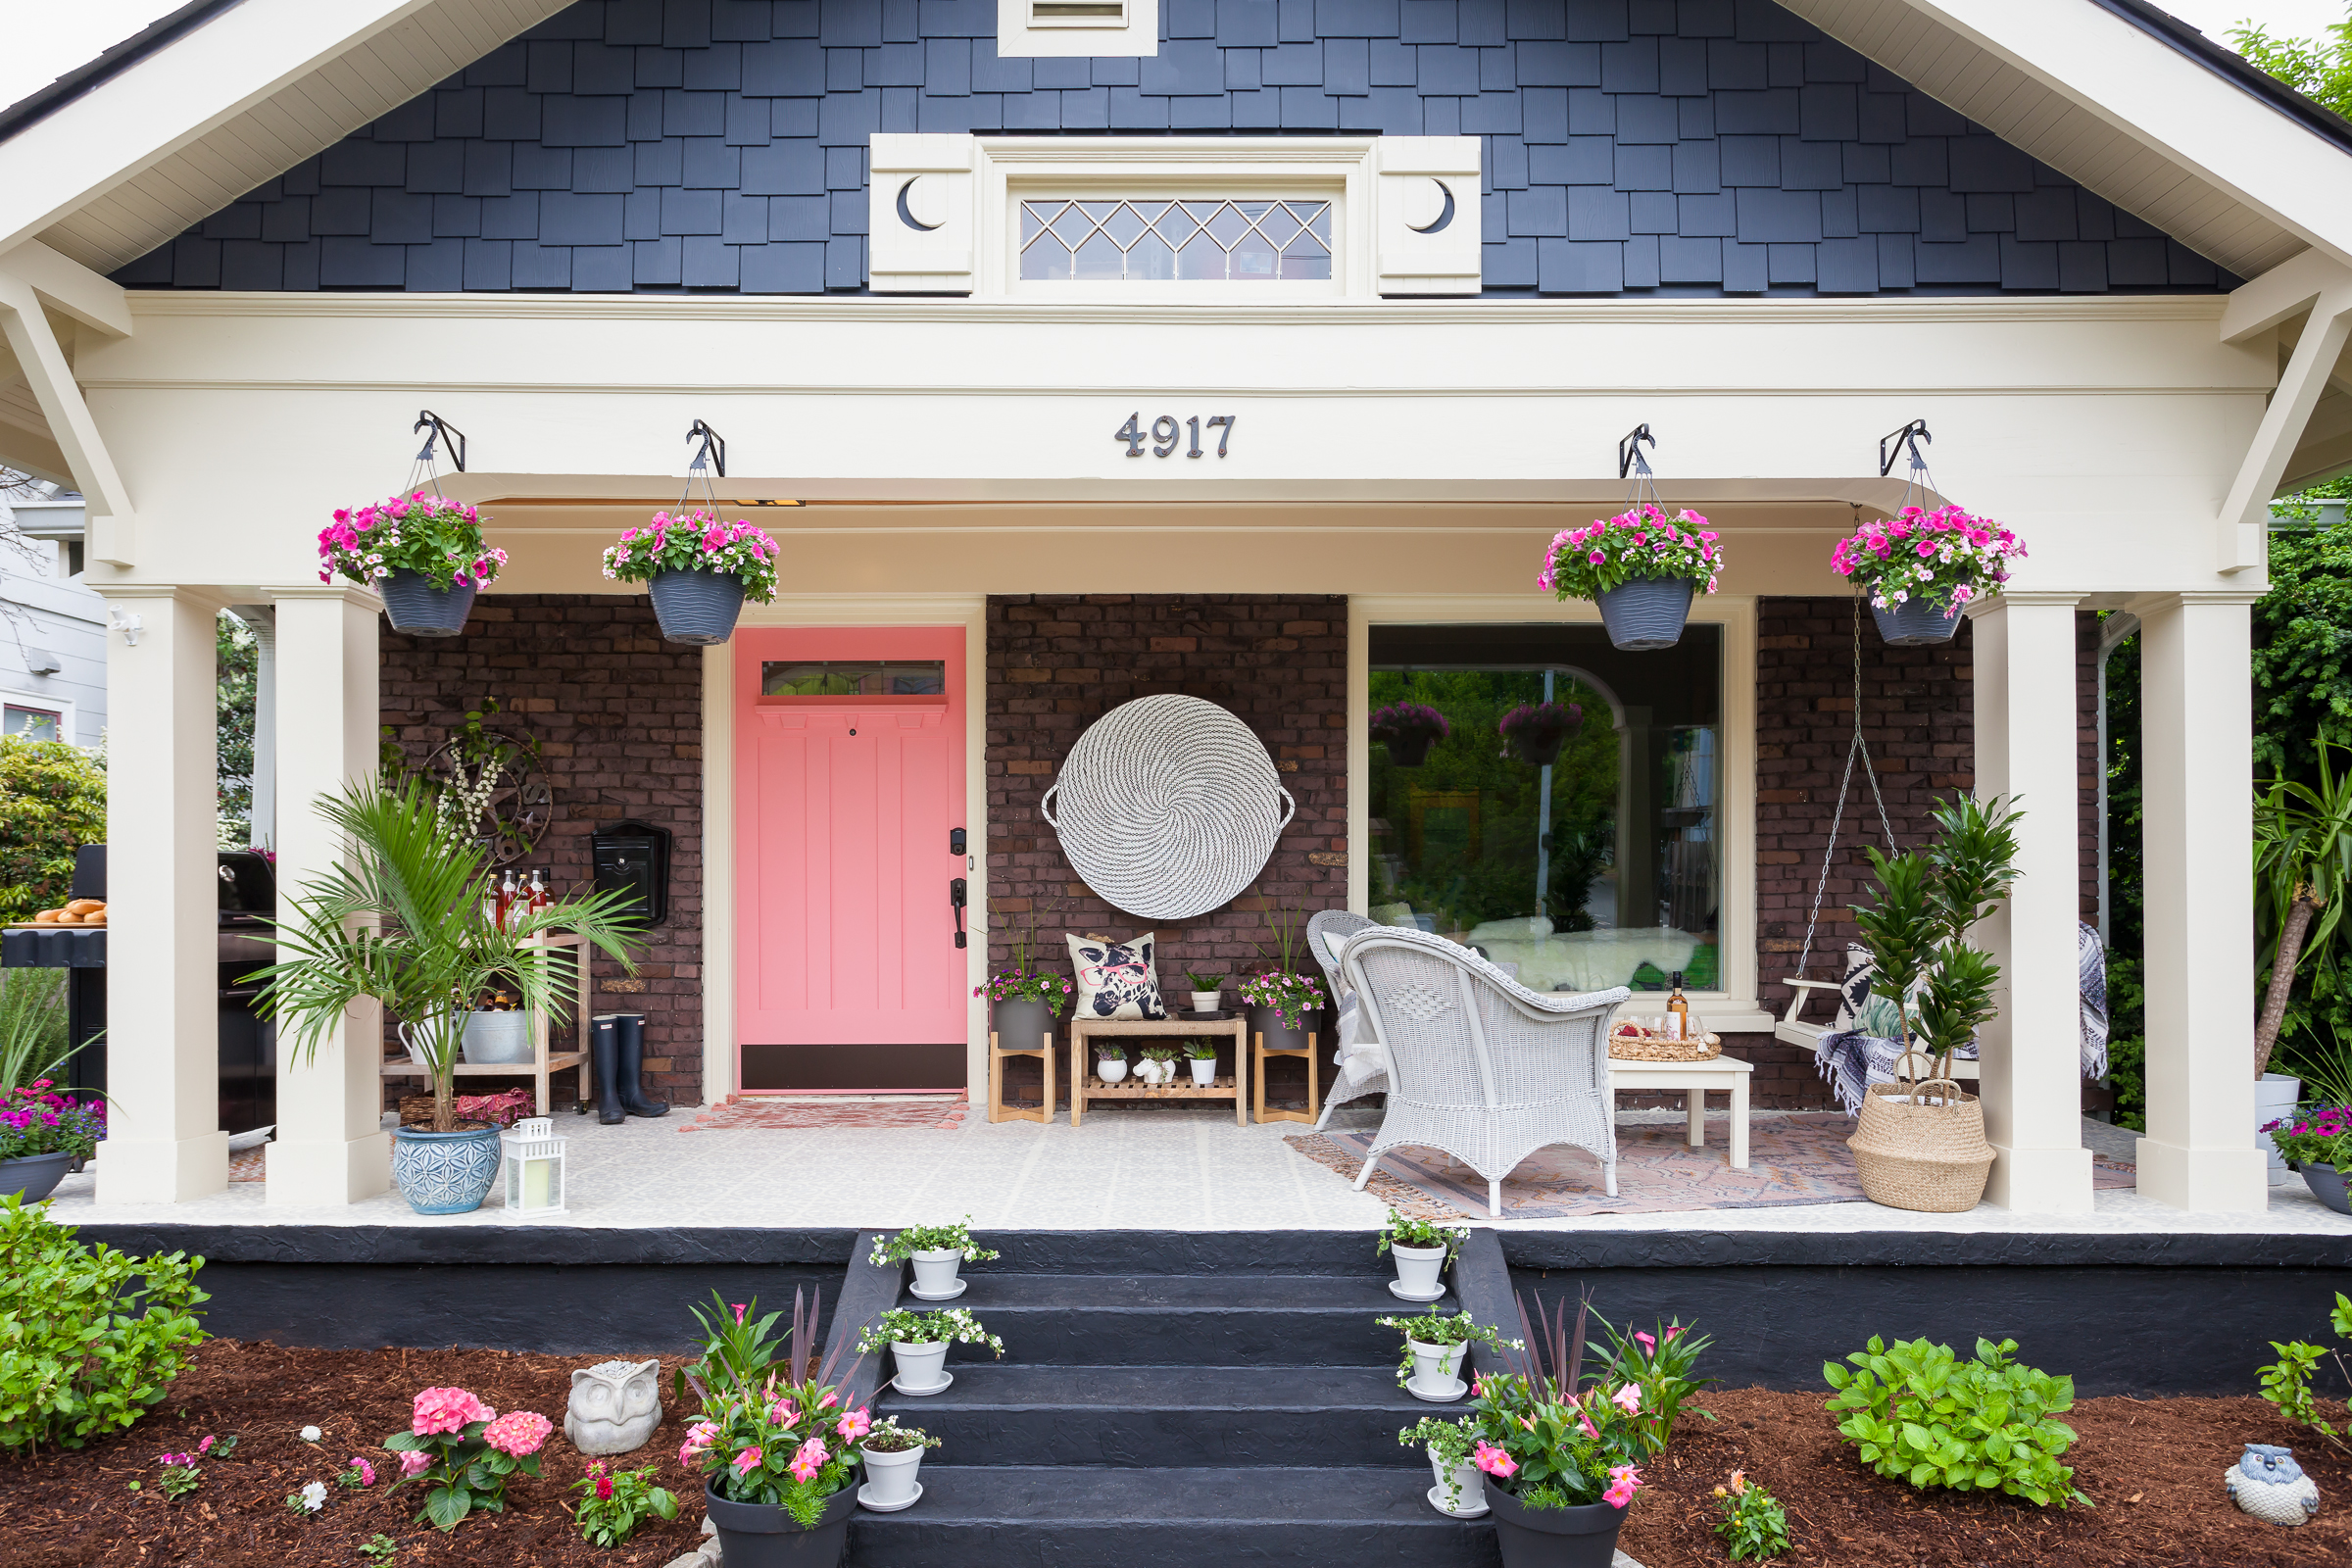 HGTV Ultimate Outdoor Award Nominee Design by Rebecca Rowland Interiors. Photo by Julie Mannell